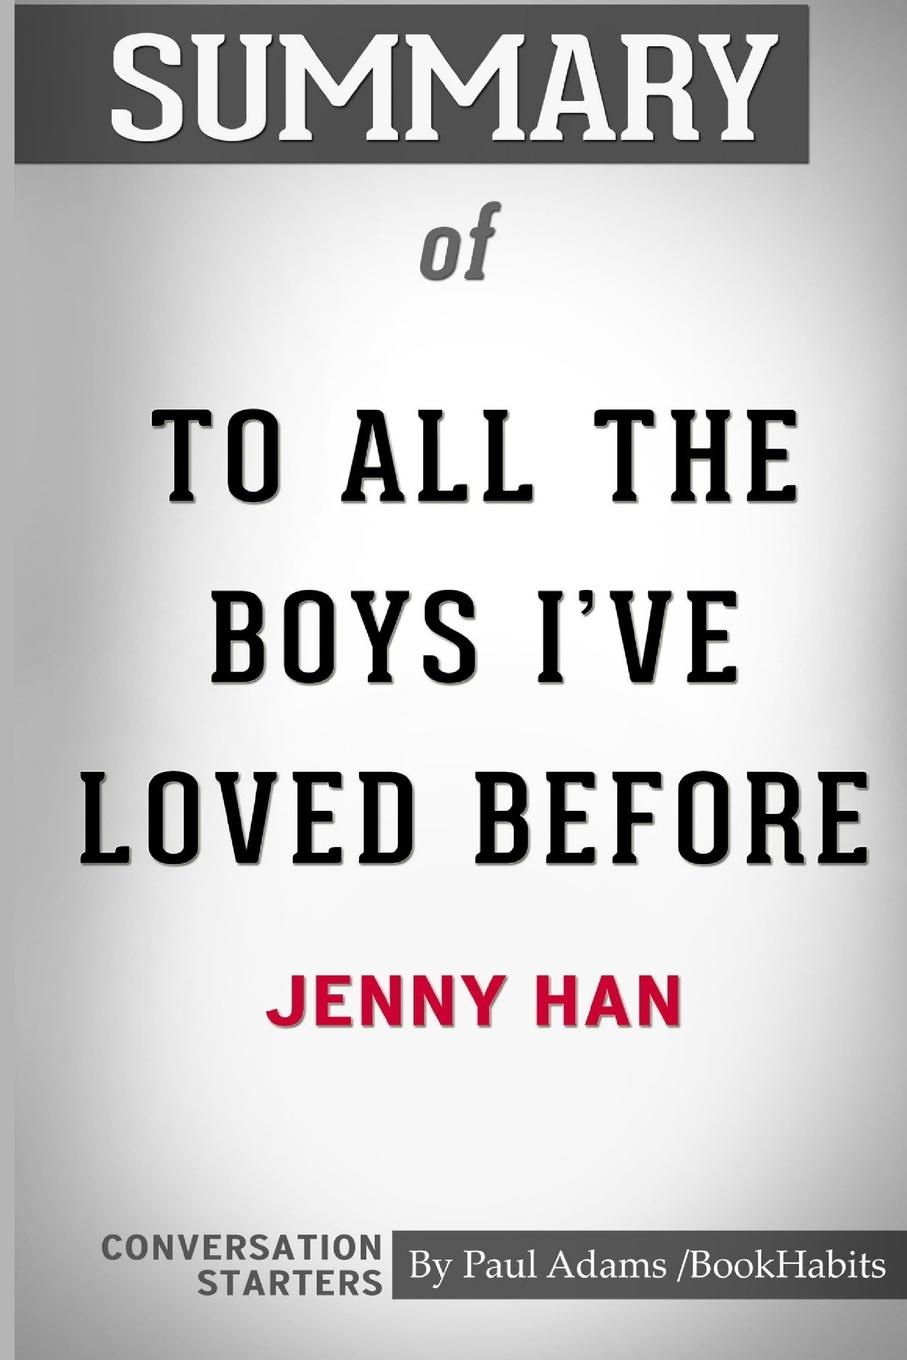 лучшая цена Paul Adams / BookHabits Summary of To All The Boys I've Loved Before by Jenny Han. Conversation Starters